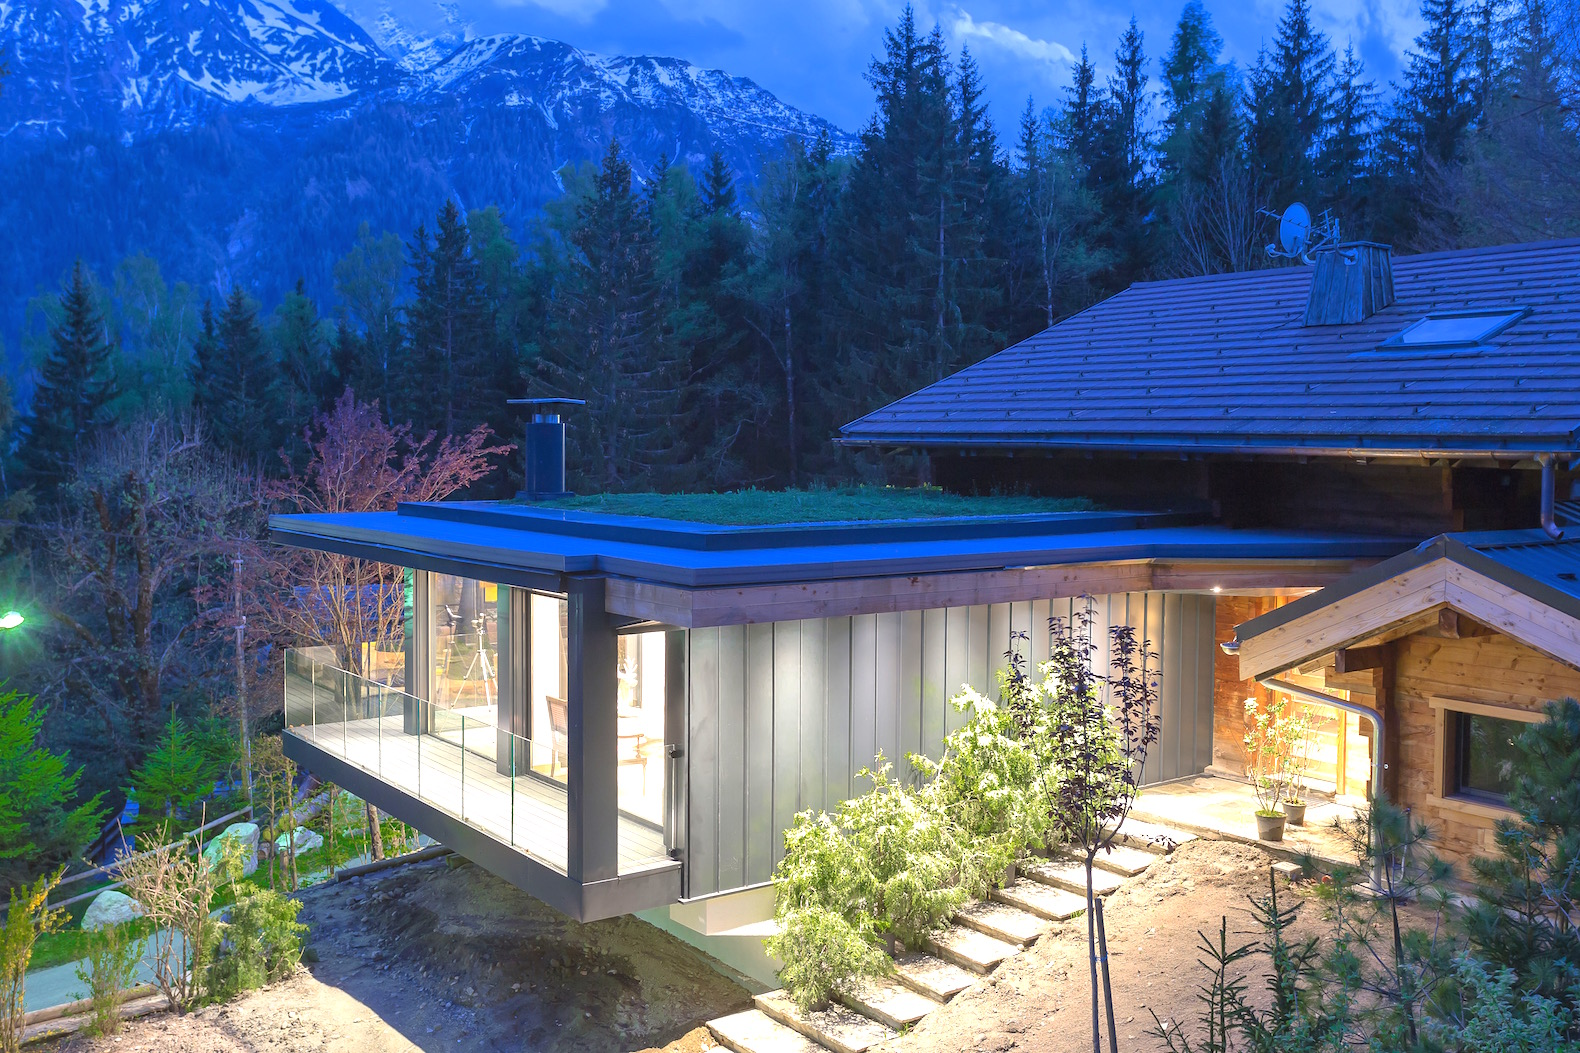 Insulating Green Roof Keeps The Sublime Chalet Solelyâ Warm In Winter